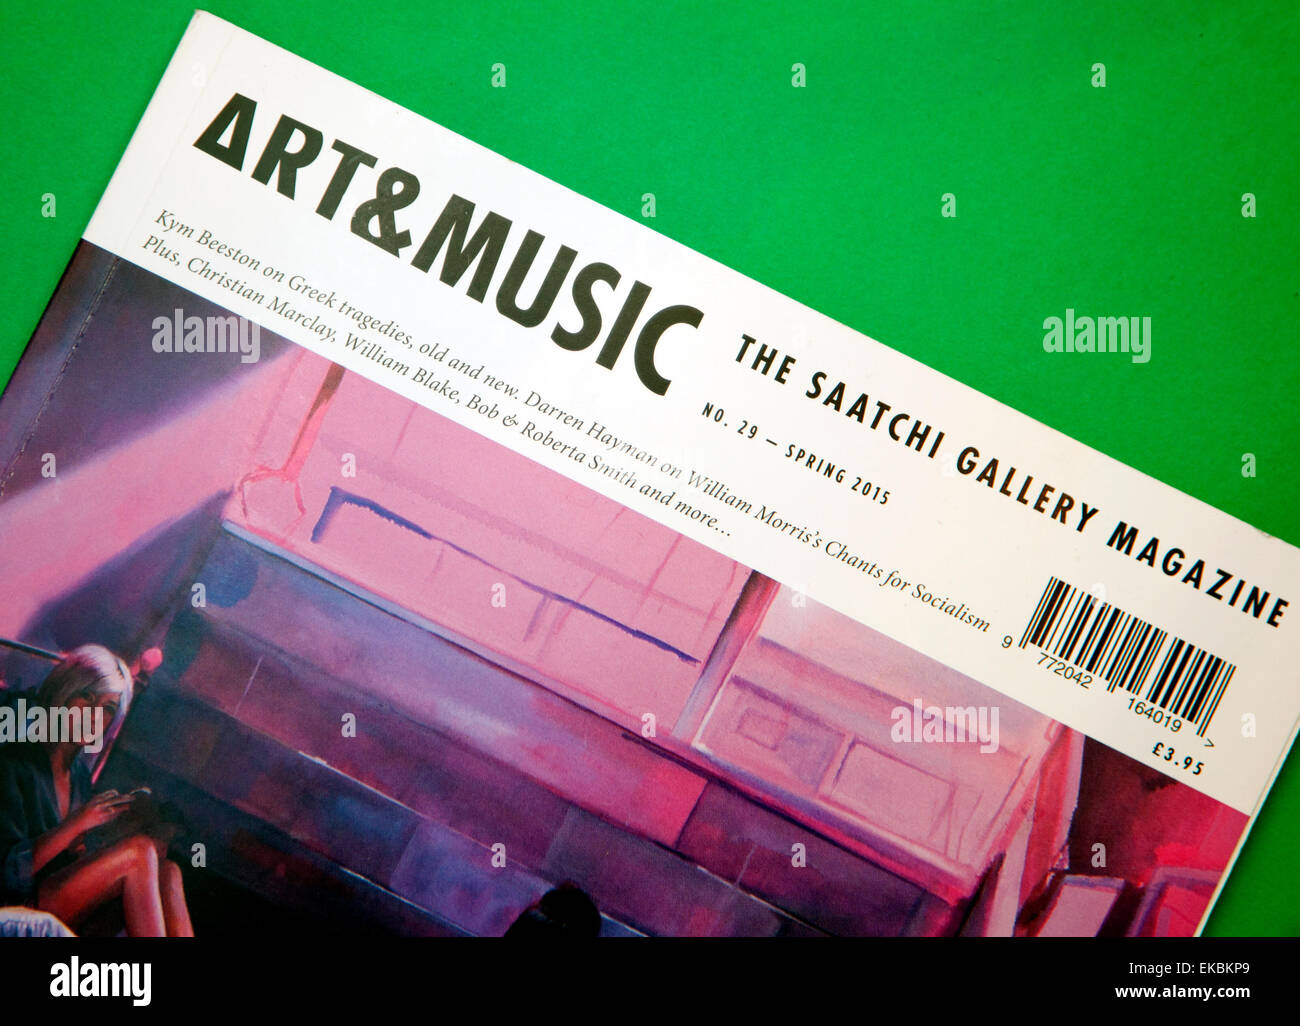 The Saatchi Gallery 'Art & Music' magazine. London - Stock Image